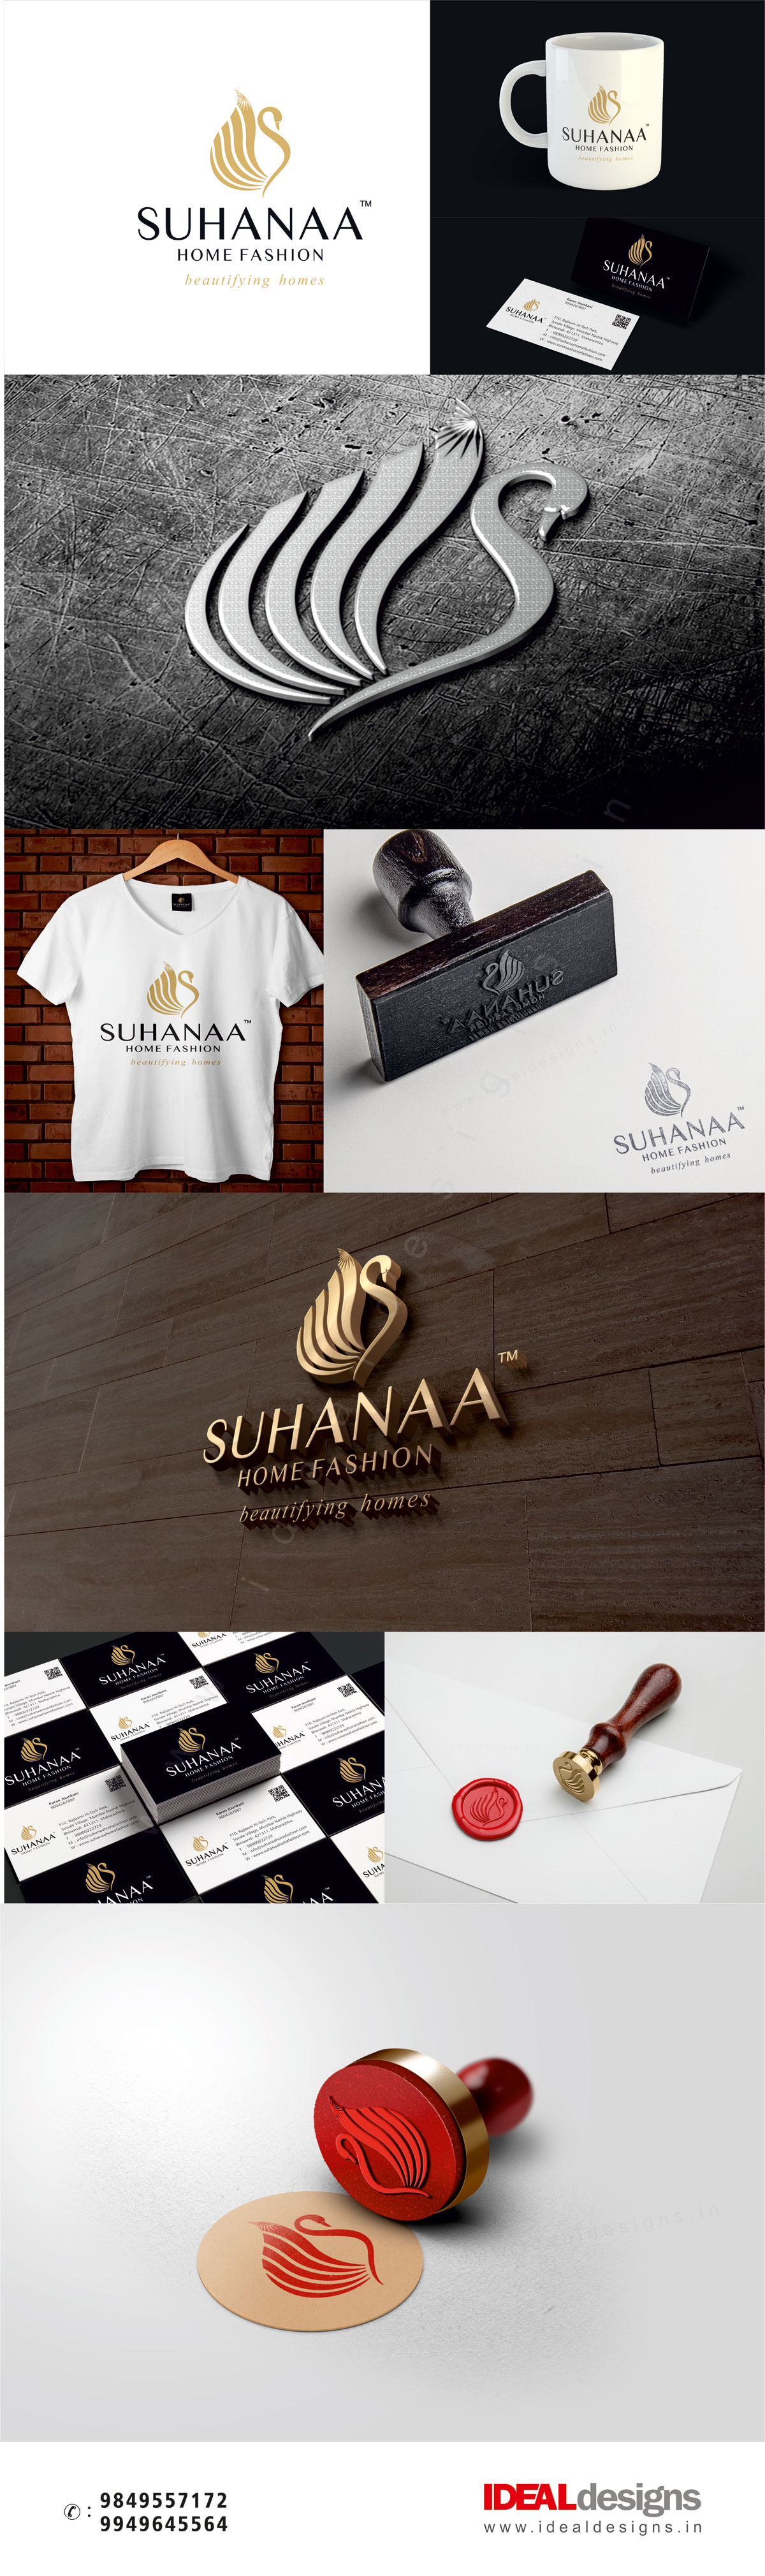 suhana-furniture-and-furnishings-branding-india-professional-designs-hyderabad-corporate-style-branidng-hyderabad-suhana